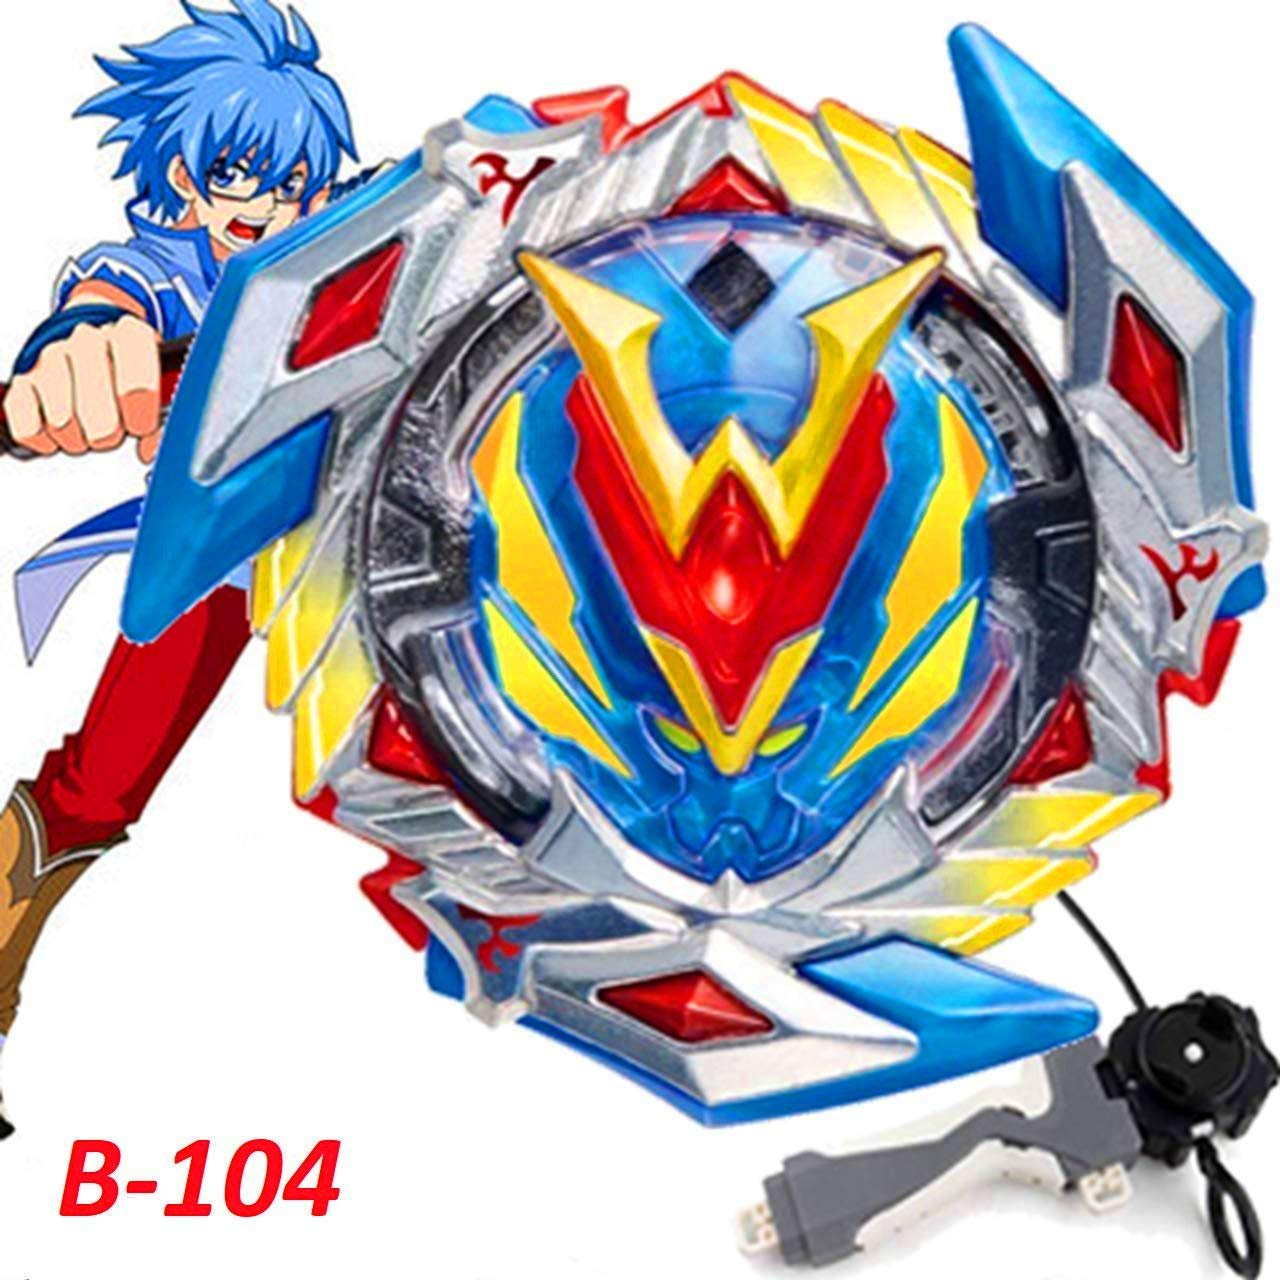 7edd4755064a Urcara Bey Burst Gyro Battling Top B-104 Beyblade Burst Winning  Valkyrie.12VI Starter Spinning Top with Launcher + Grip Set Top Battle Set  Toys for ...